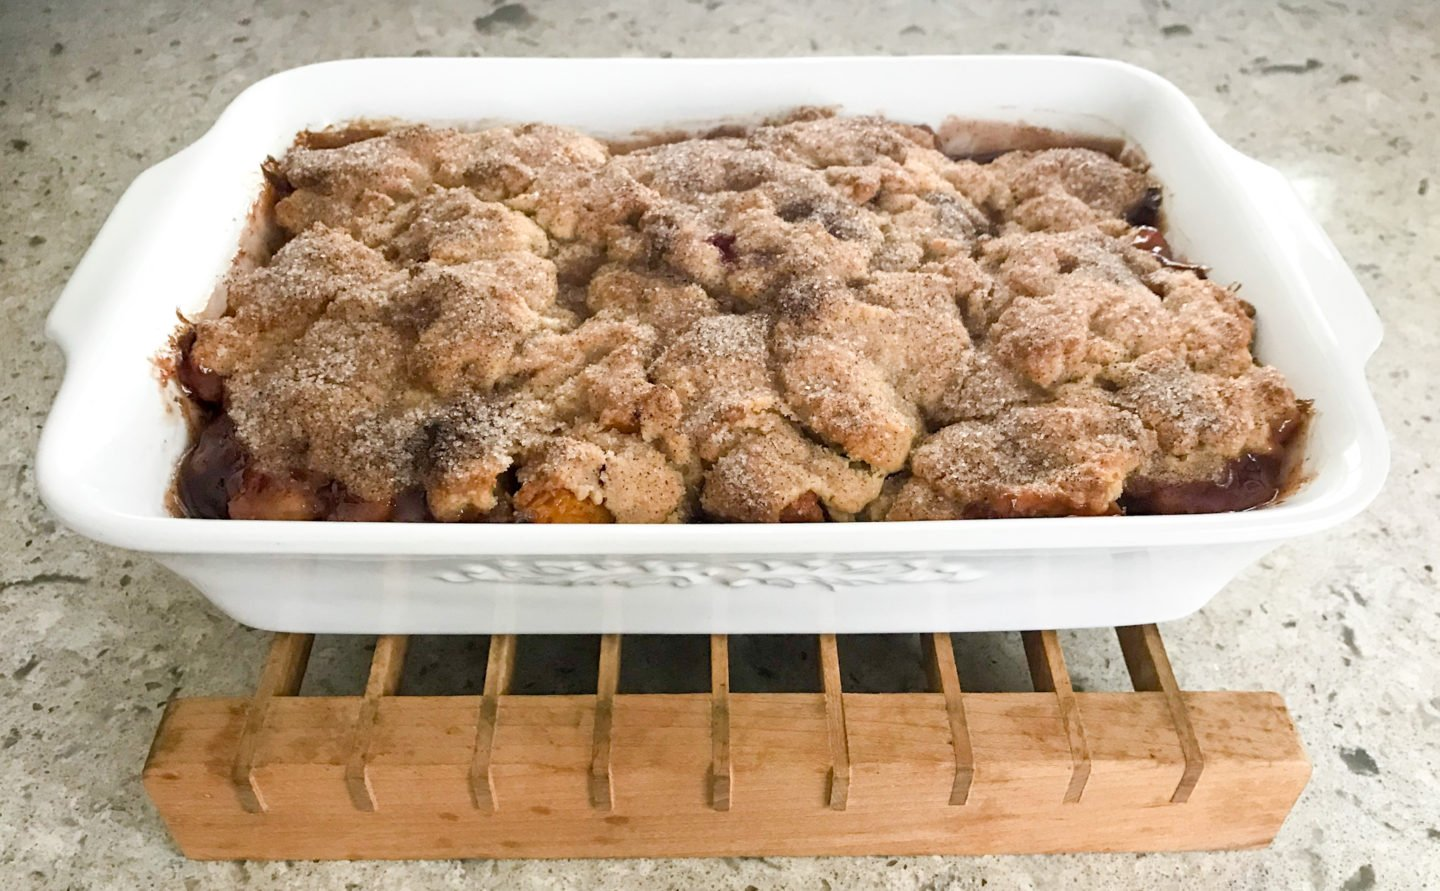 Bake your fresh peach cobbler until topping is golden, about 30 minutes.